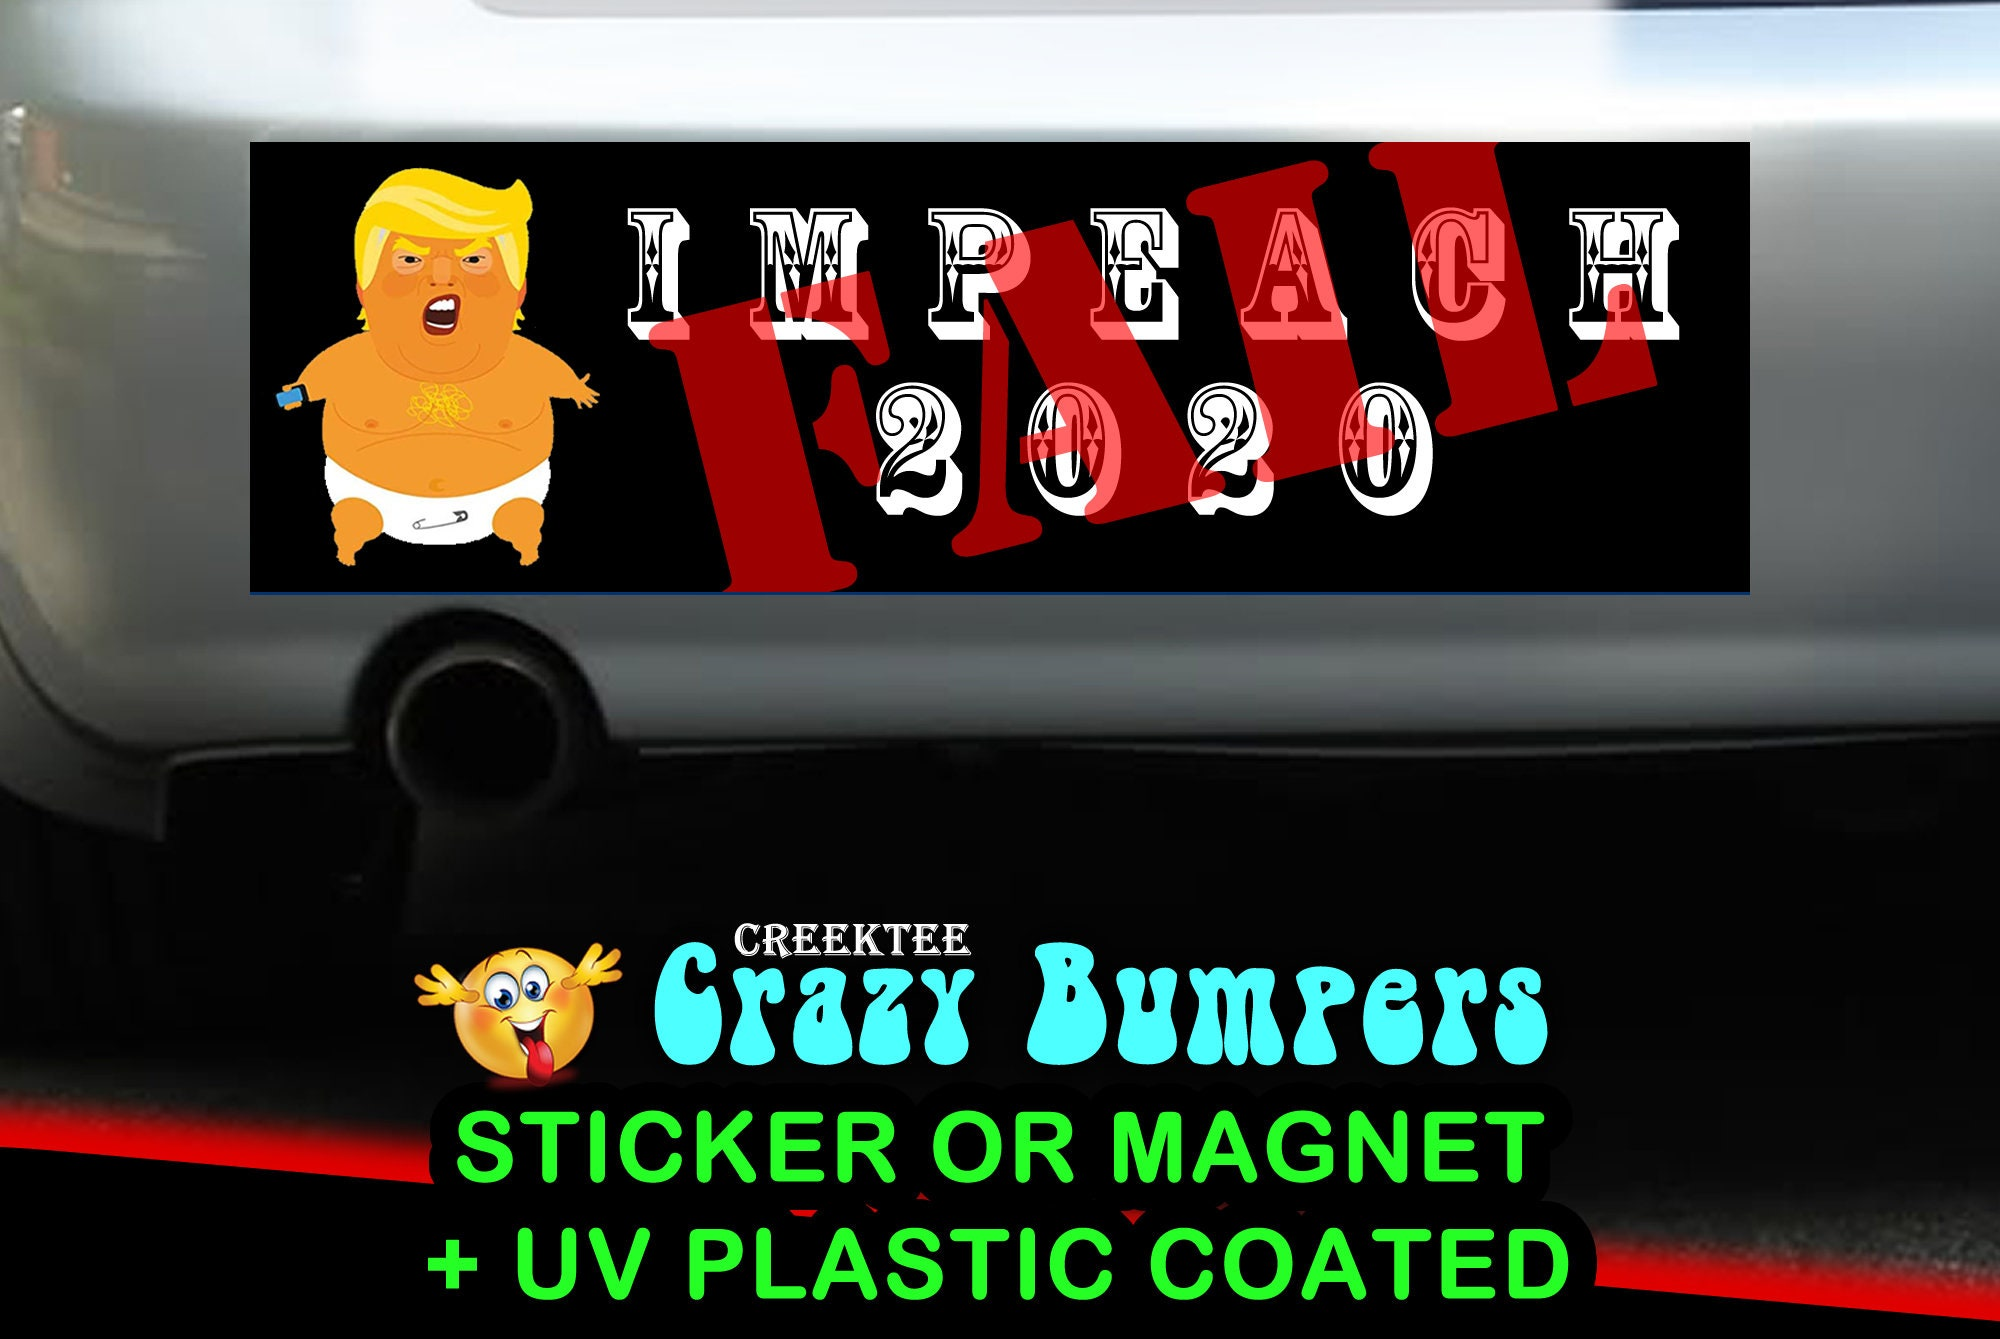 CAD$9.74 - Fail Impeach 2020 Trump icon Up 10 x 3 Bumper Sticker - Custom changes and orders welcomed!